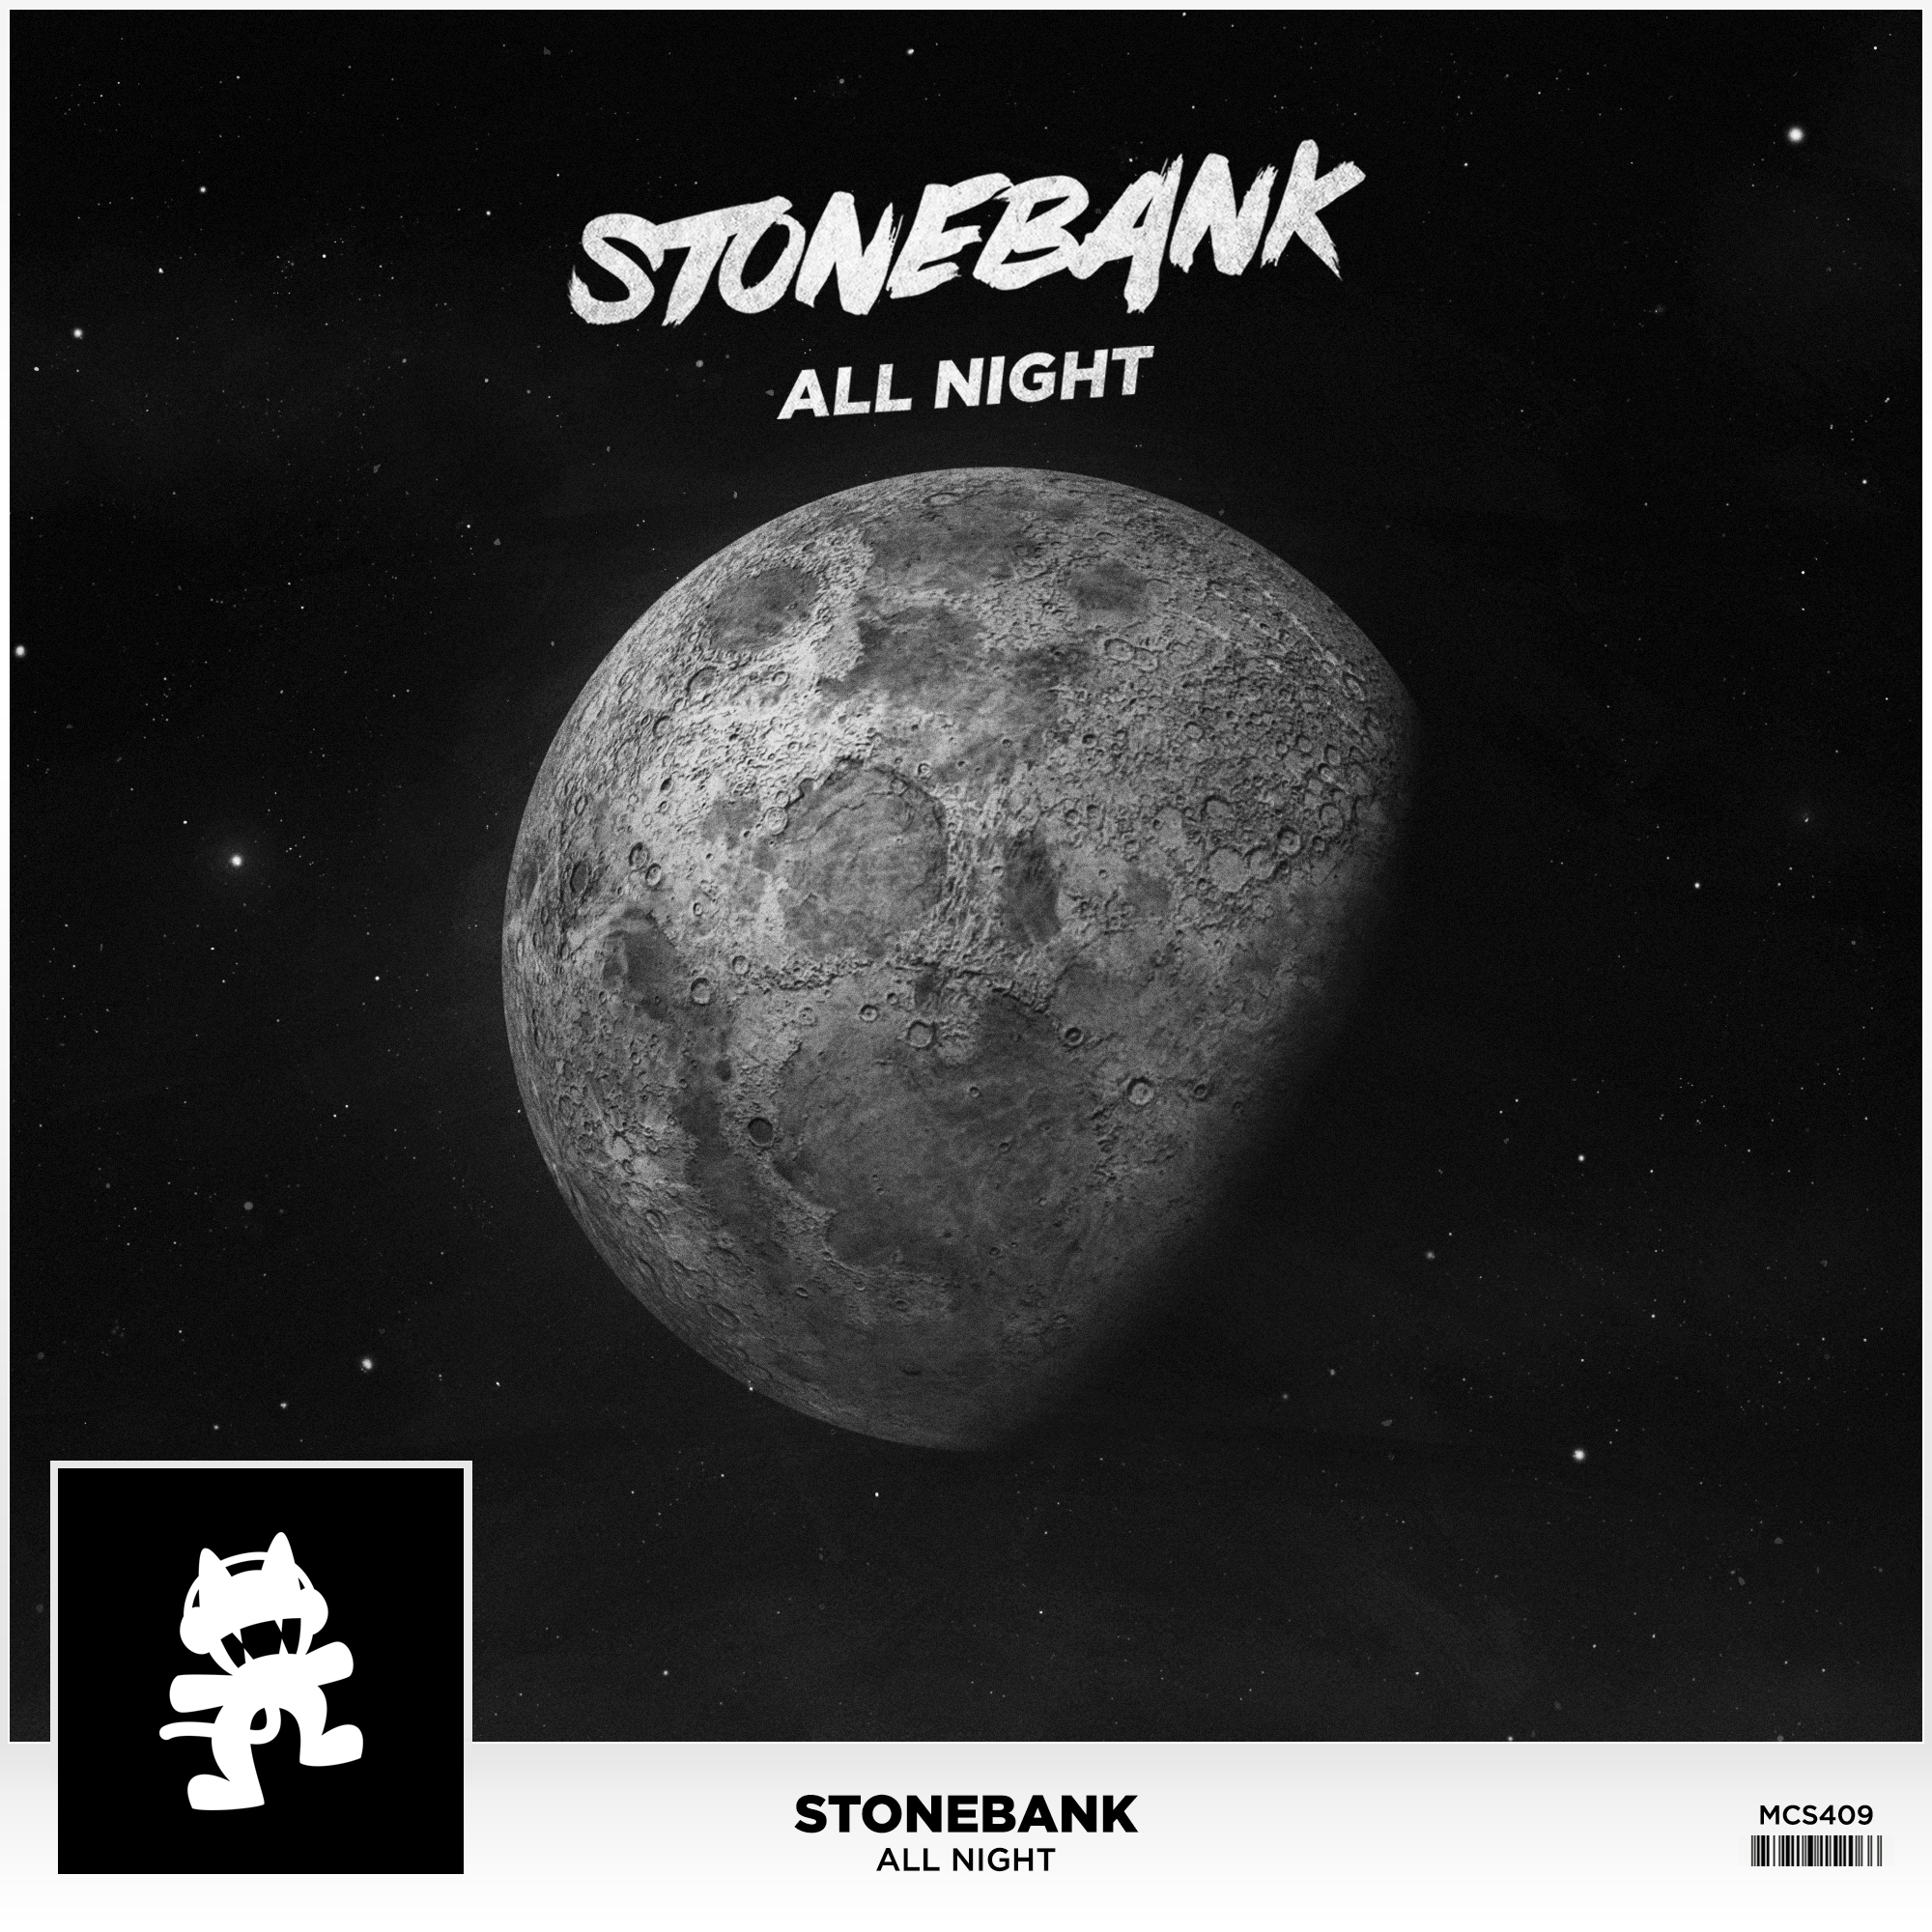 All Night (Stonebank)